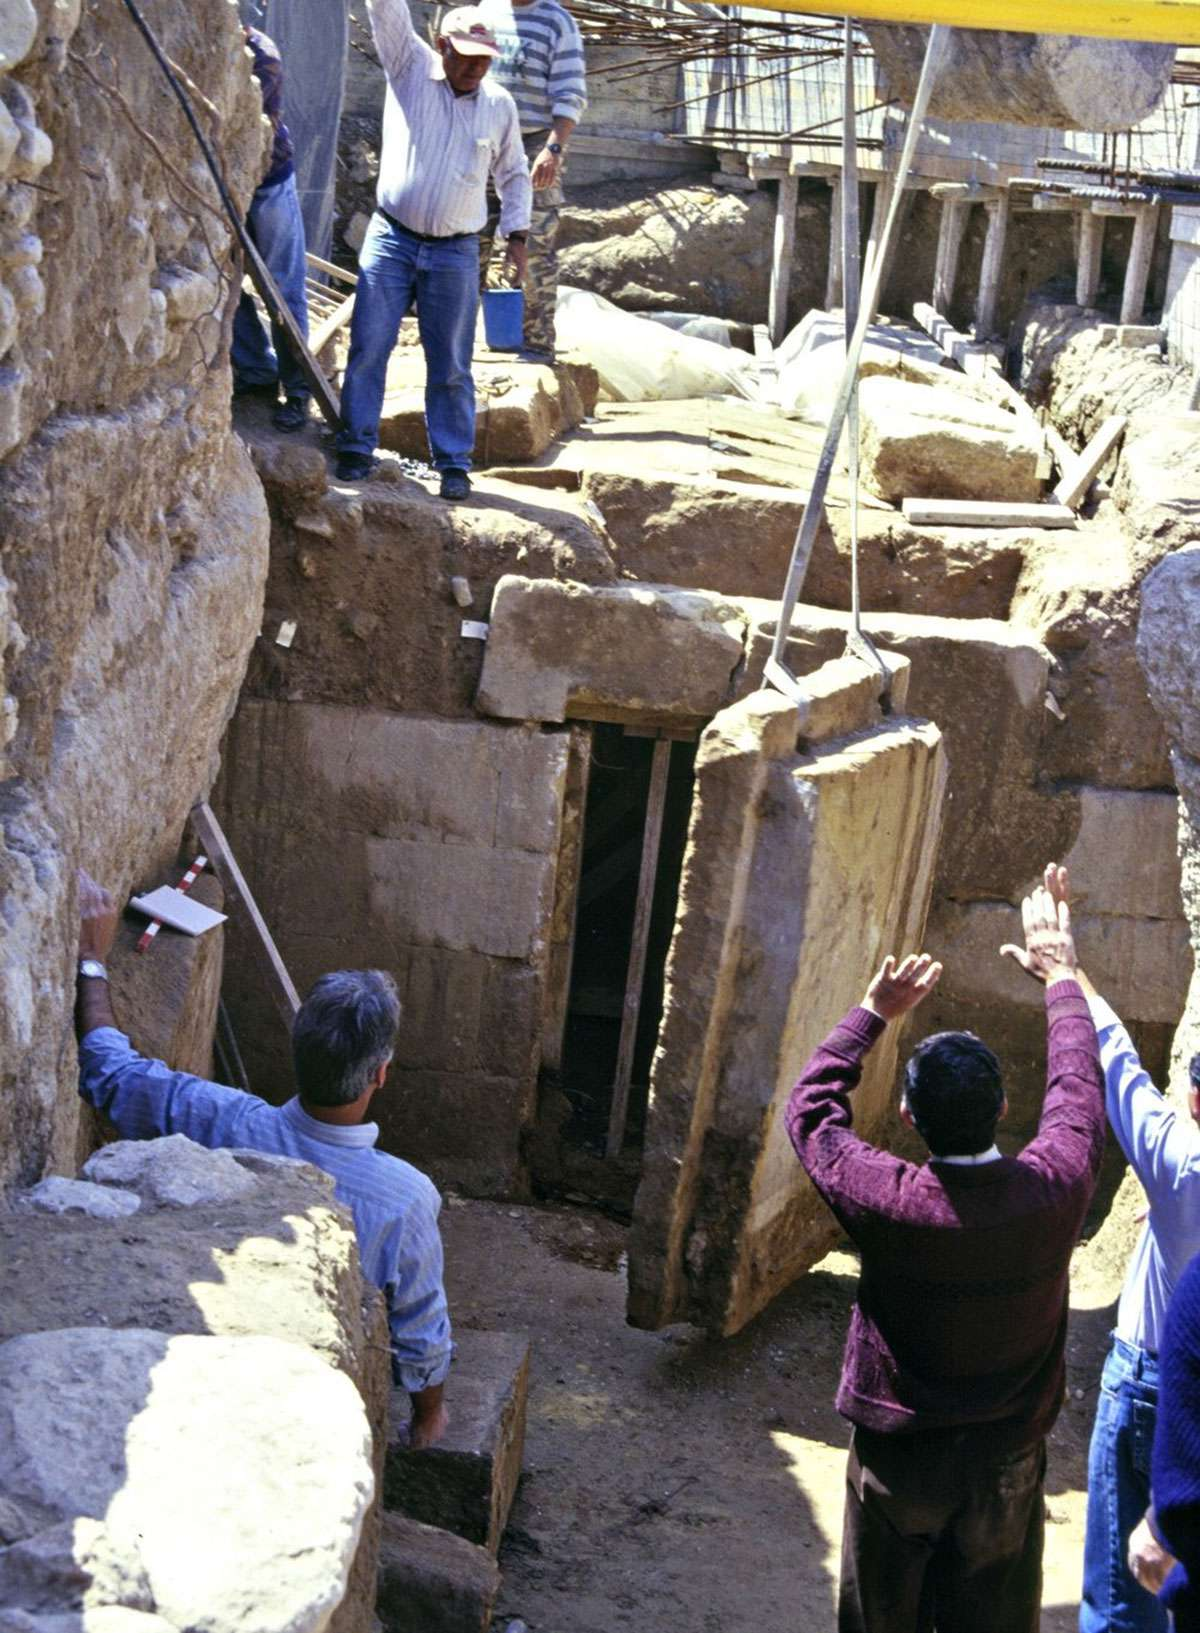 Opening the huge slab door of an intact Phoenician tomb 2750 years after it was last closed at the necropolis of Kition